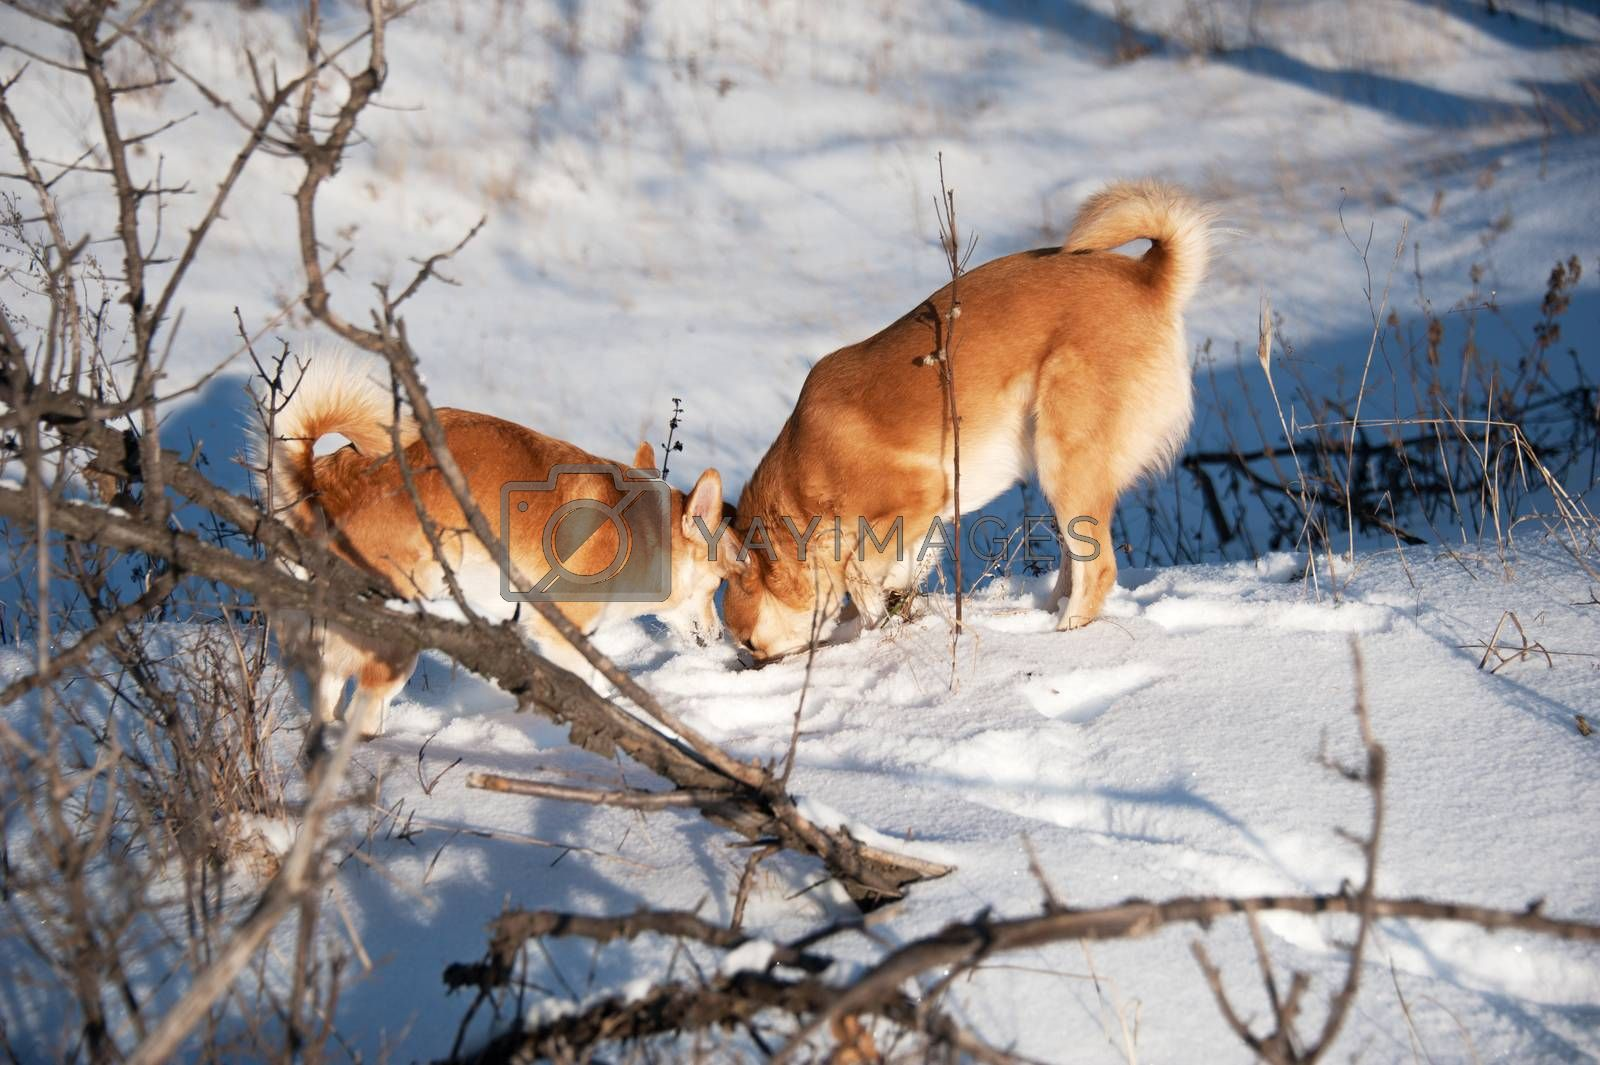 Dogs digging snow. Friendship and fun. by bashta